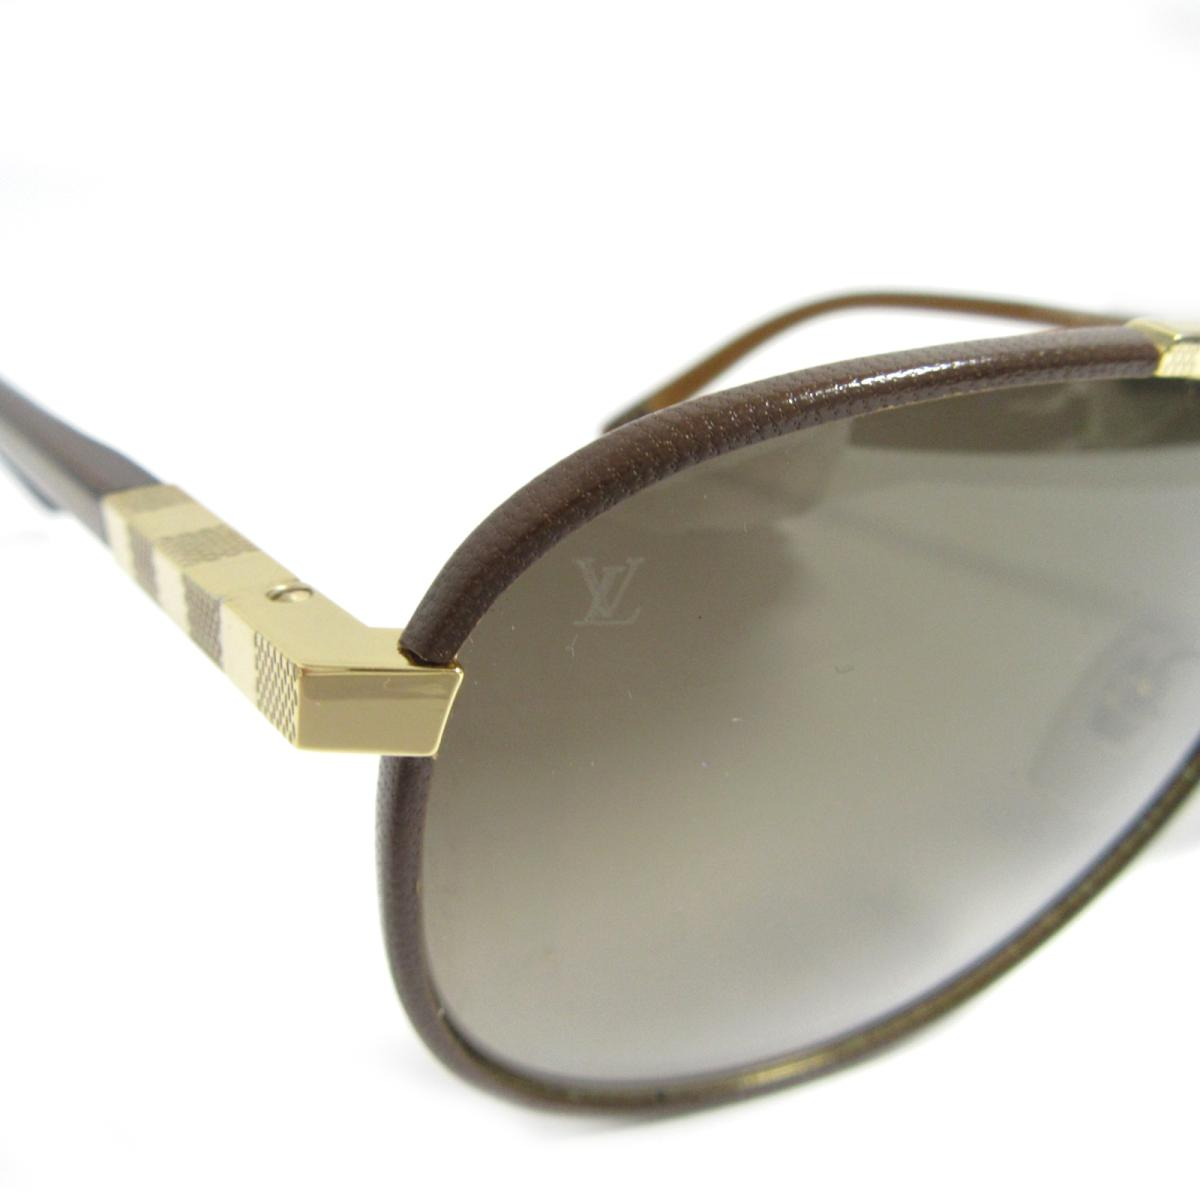 c4c68459b3bf8 Auth LOUIS VUITTON Lunettes de soleil Attraction Pilot Sunglasses Z0706U  Plastic